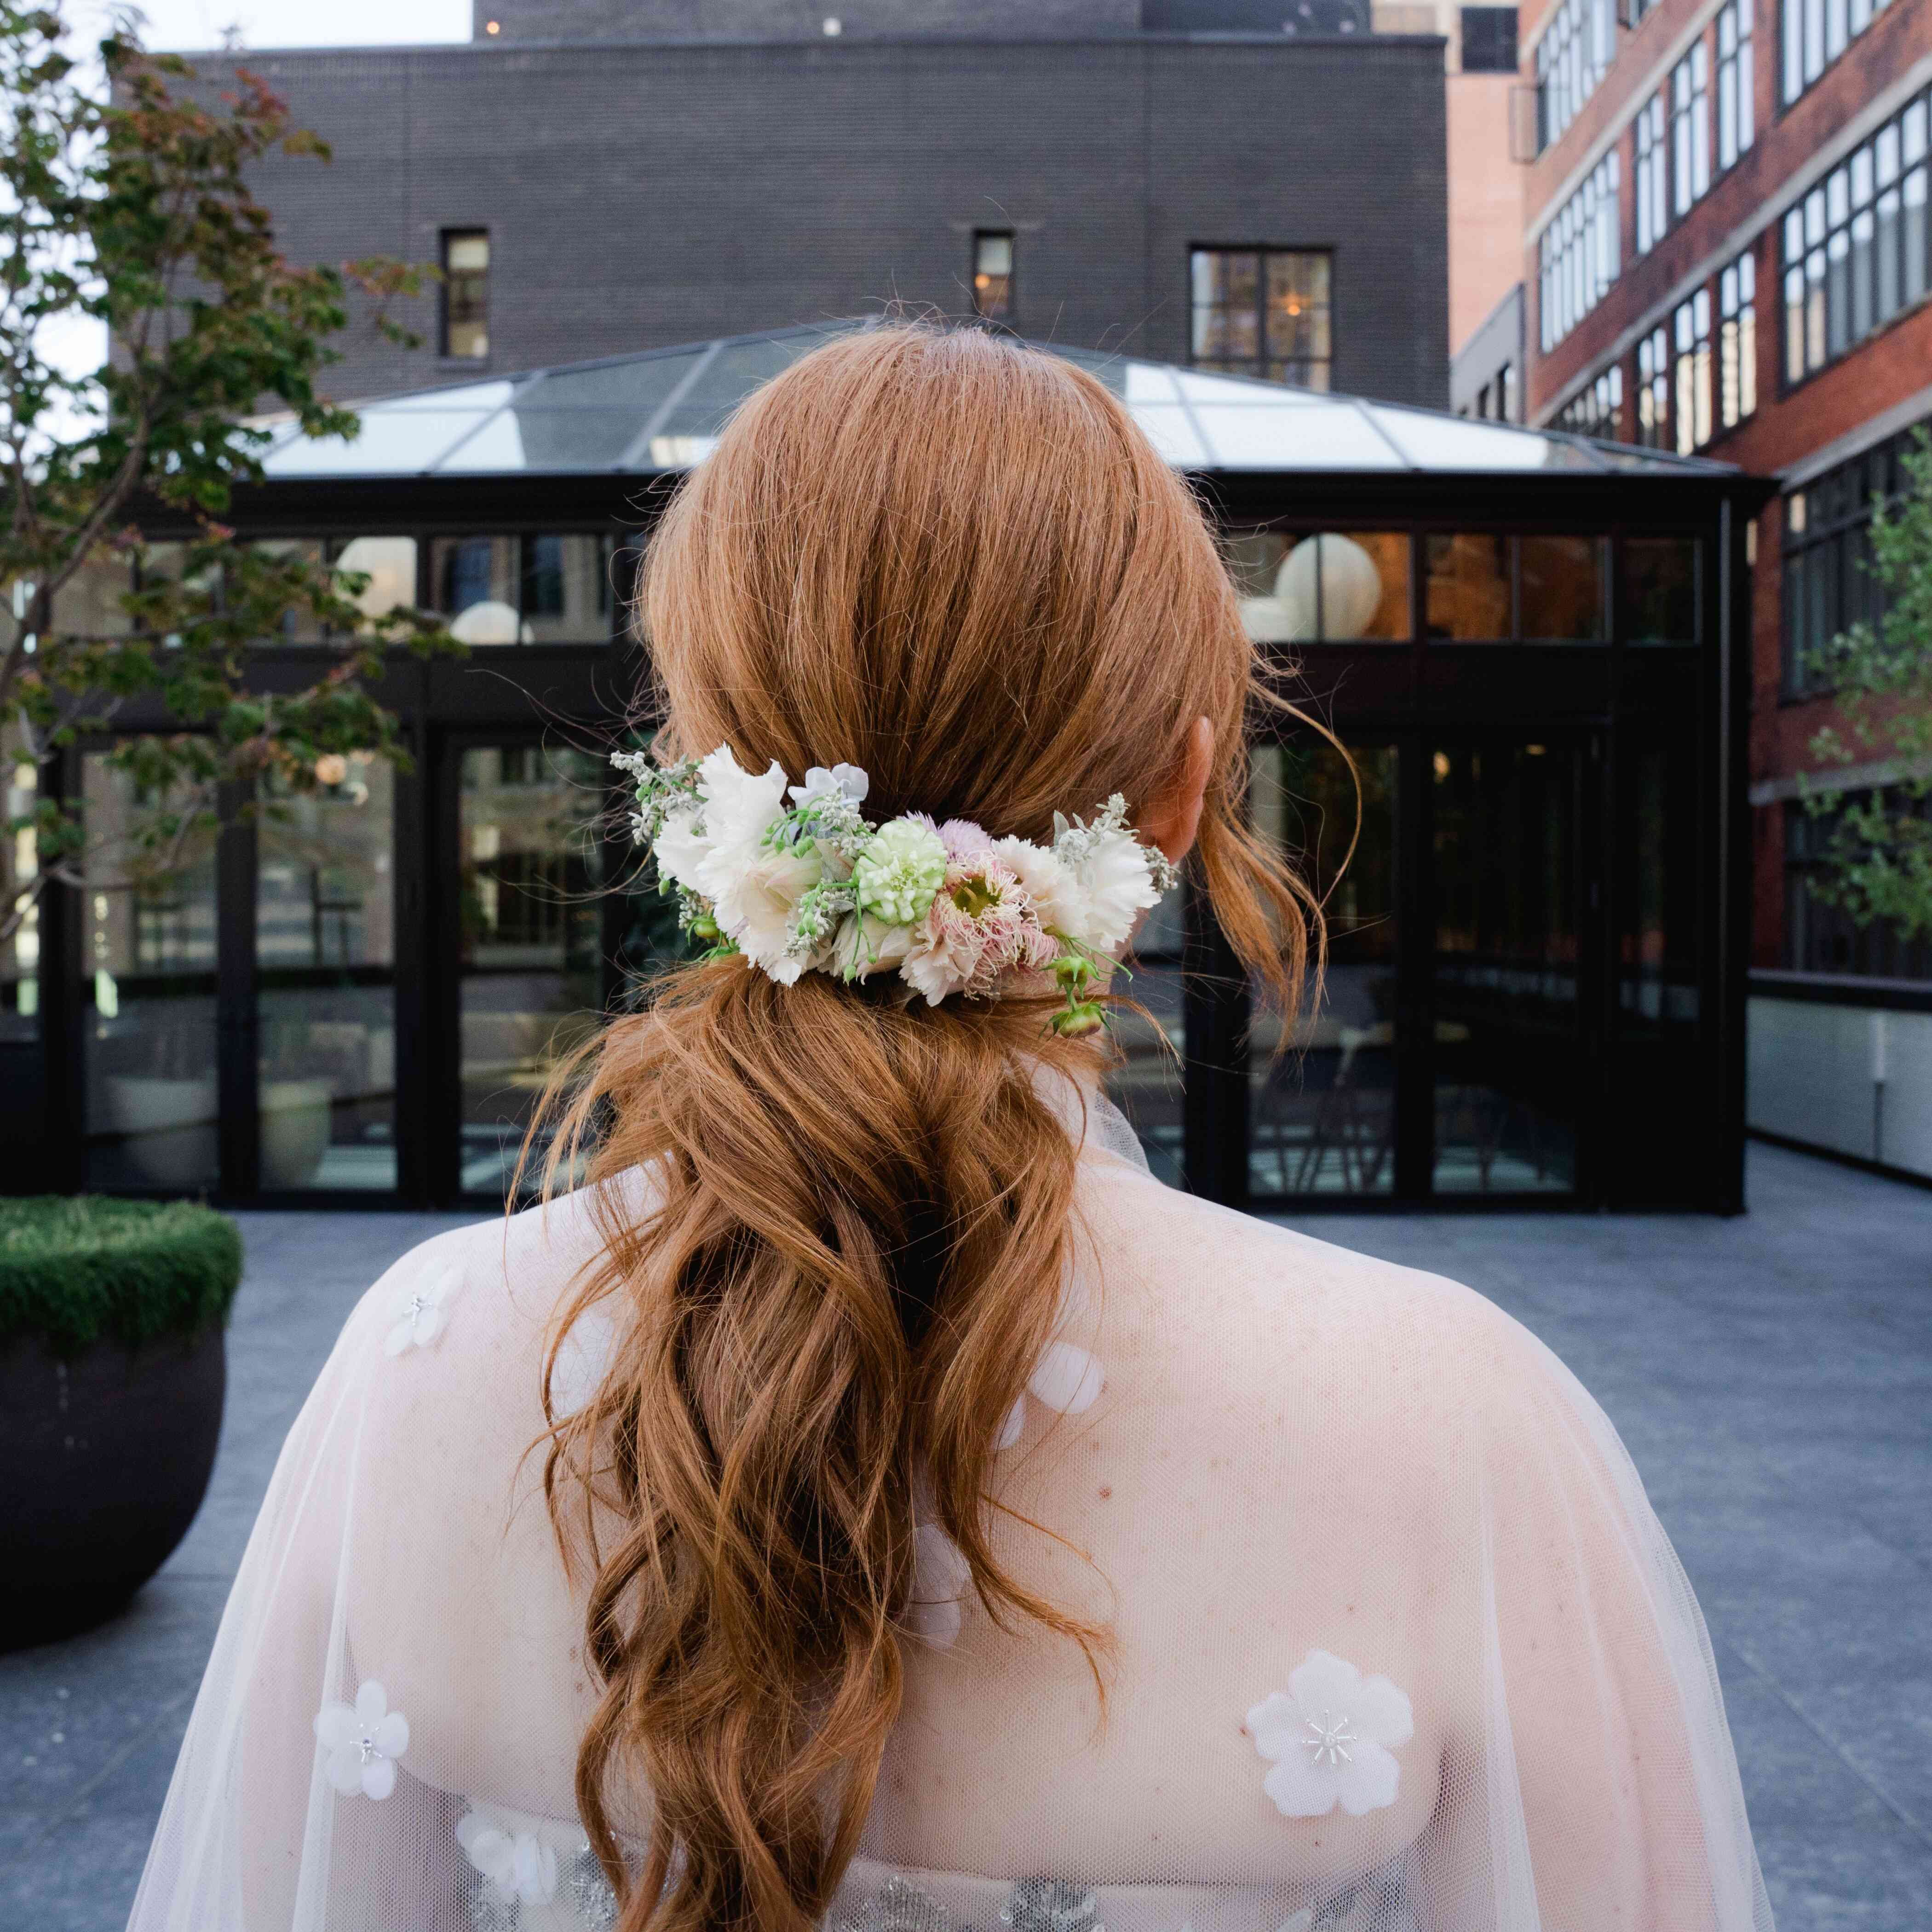 Floral-wrapped ponytail